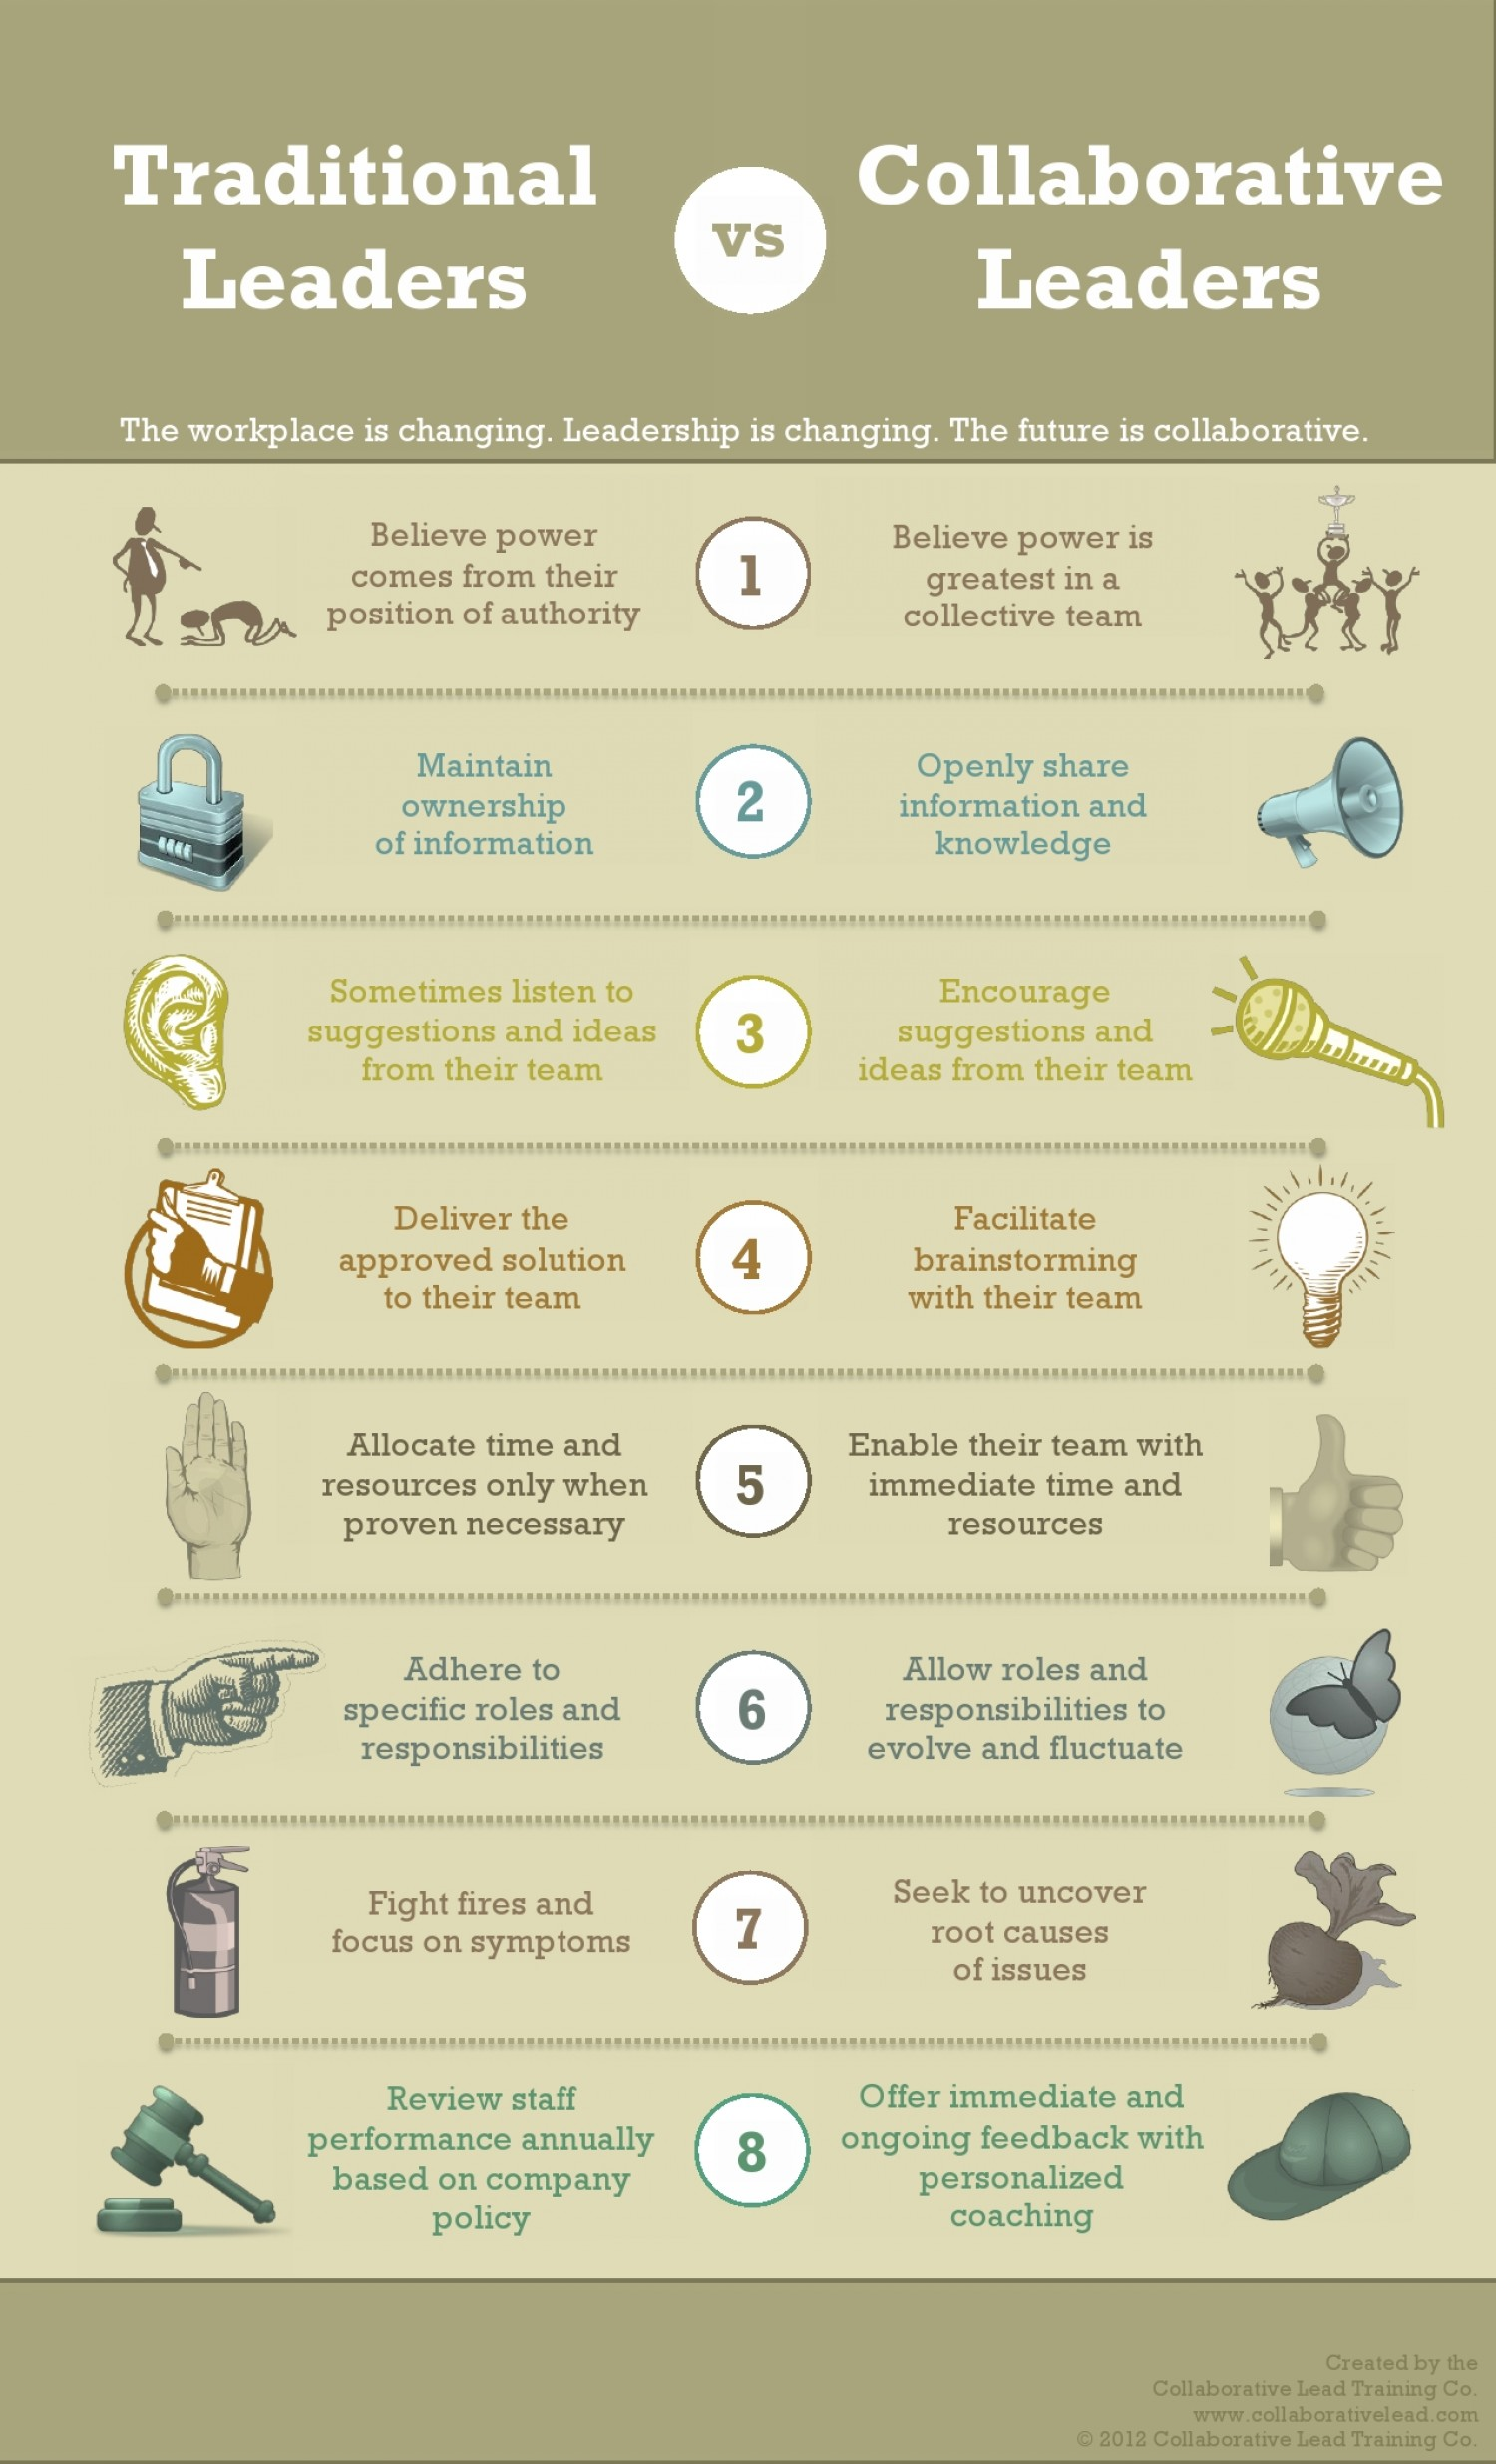 8 differences between traditional and collaborative leaders traditionalvscollaborativeleaders8keyindicators51eecf56702bew1500 fandeluxe Choice Image